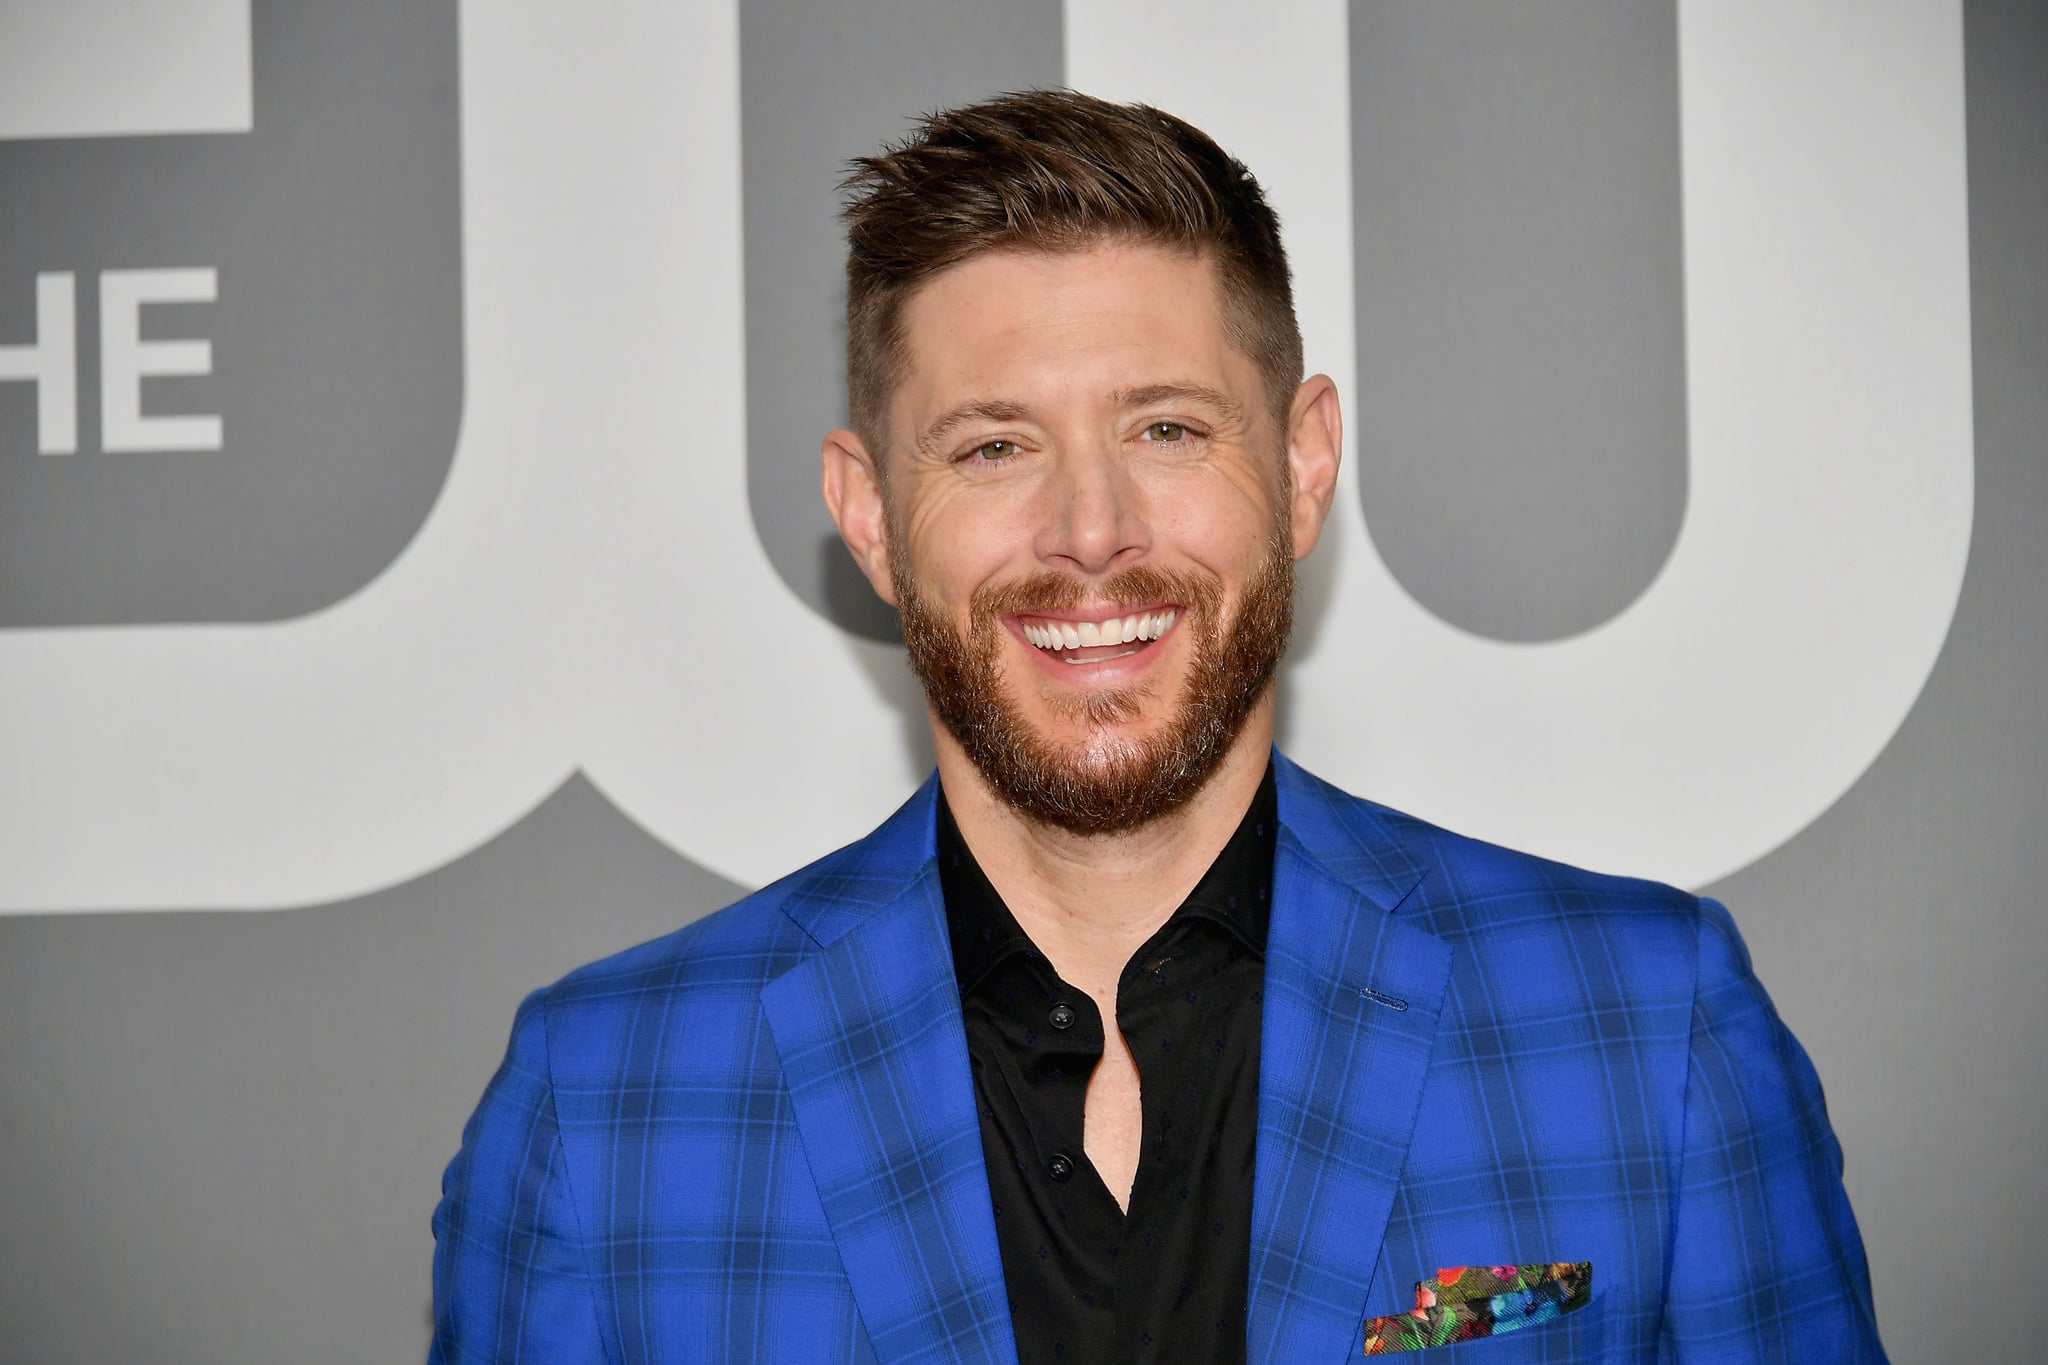 NEW YORK, NY - MAY 16:  Jensen Ackles attends the 2019 CW Network Upfront at New York City Center on May 16, 2019 in New York City.  (Photo by Dia Dipasupil/Getty Images)